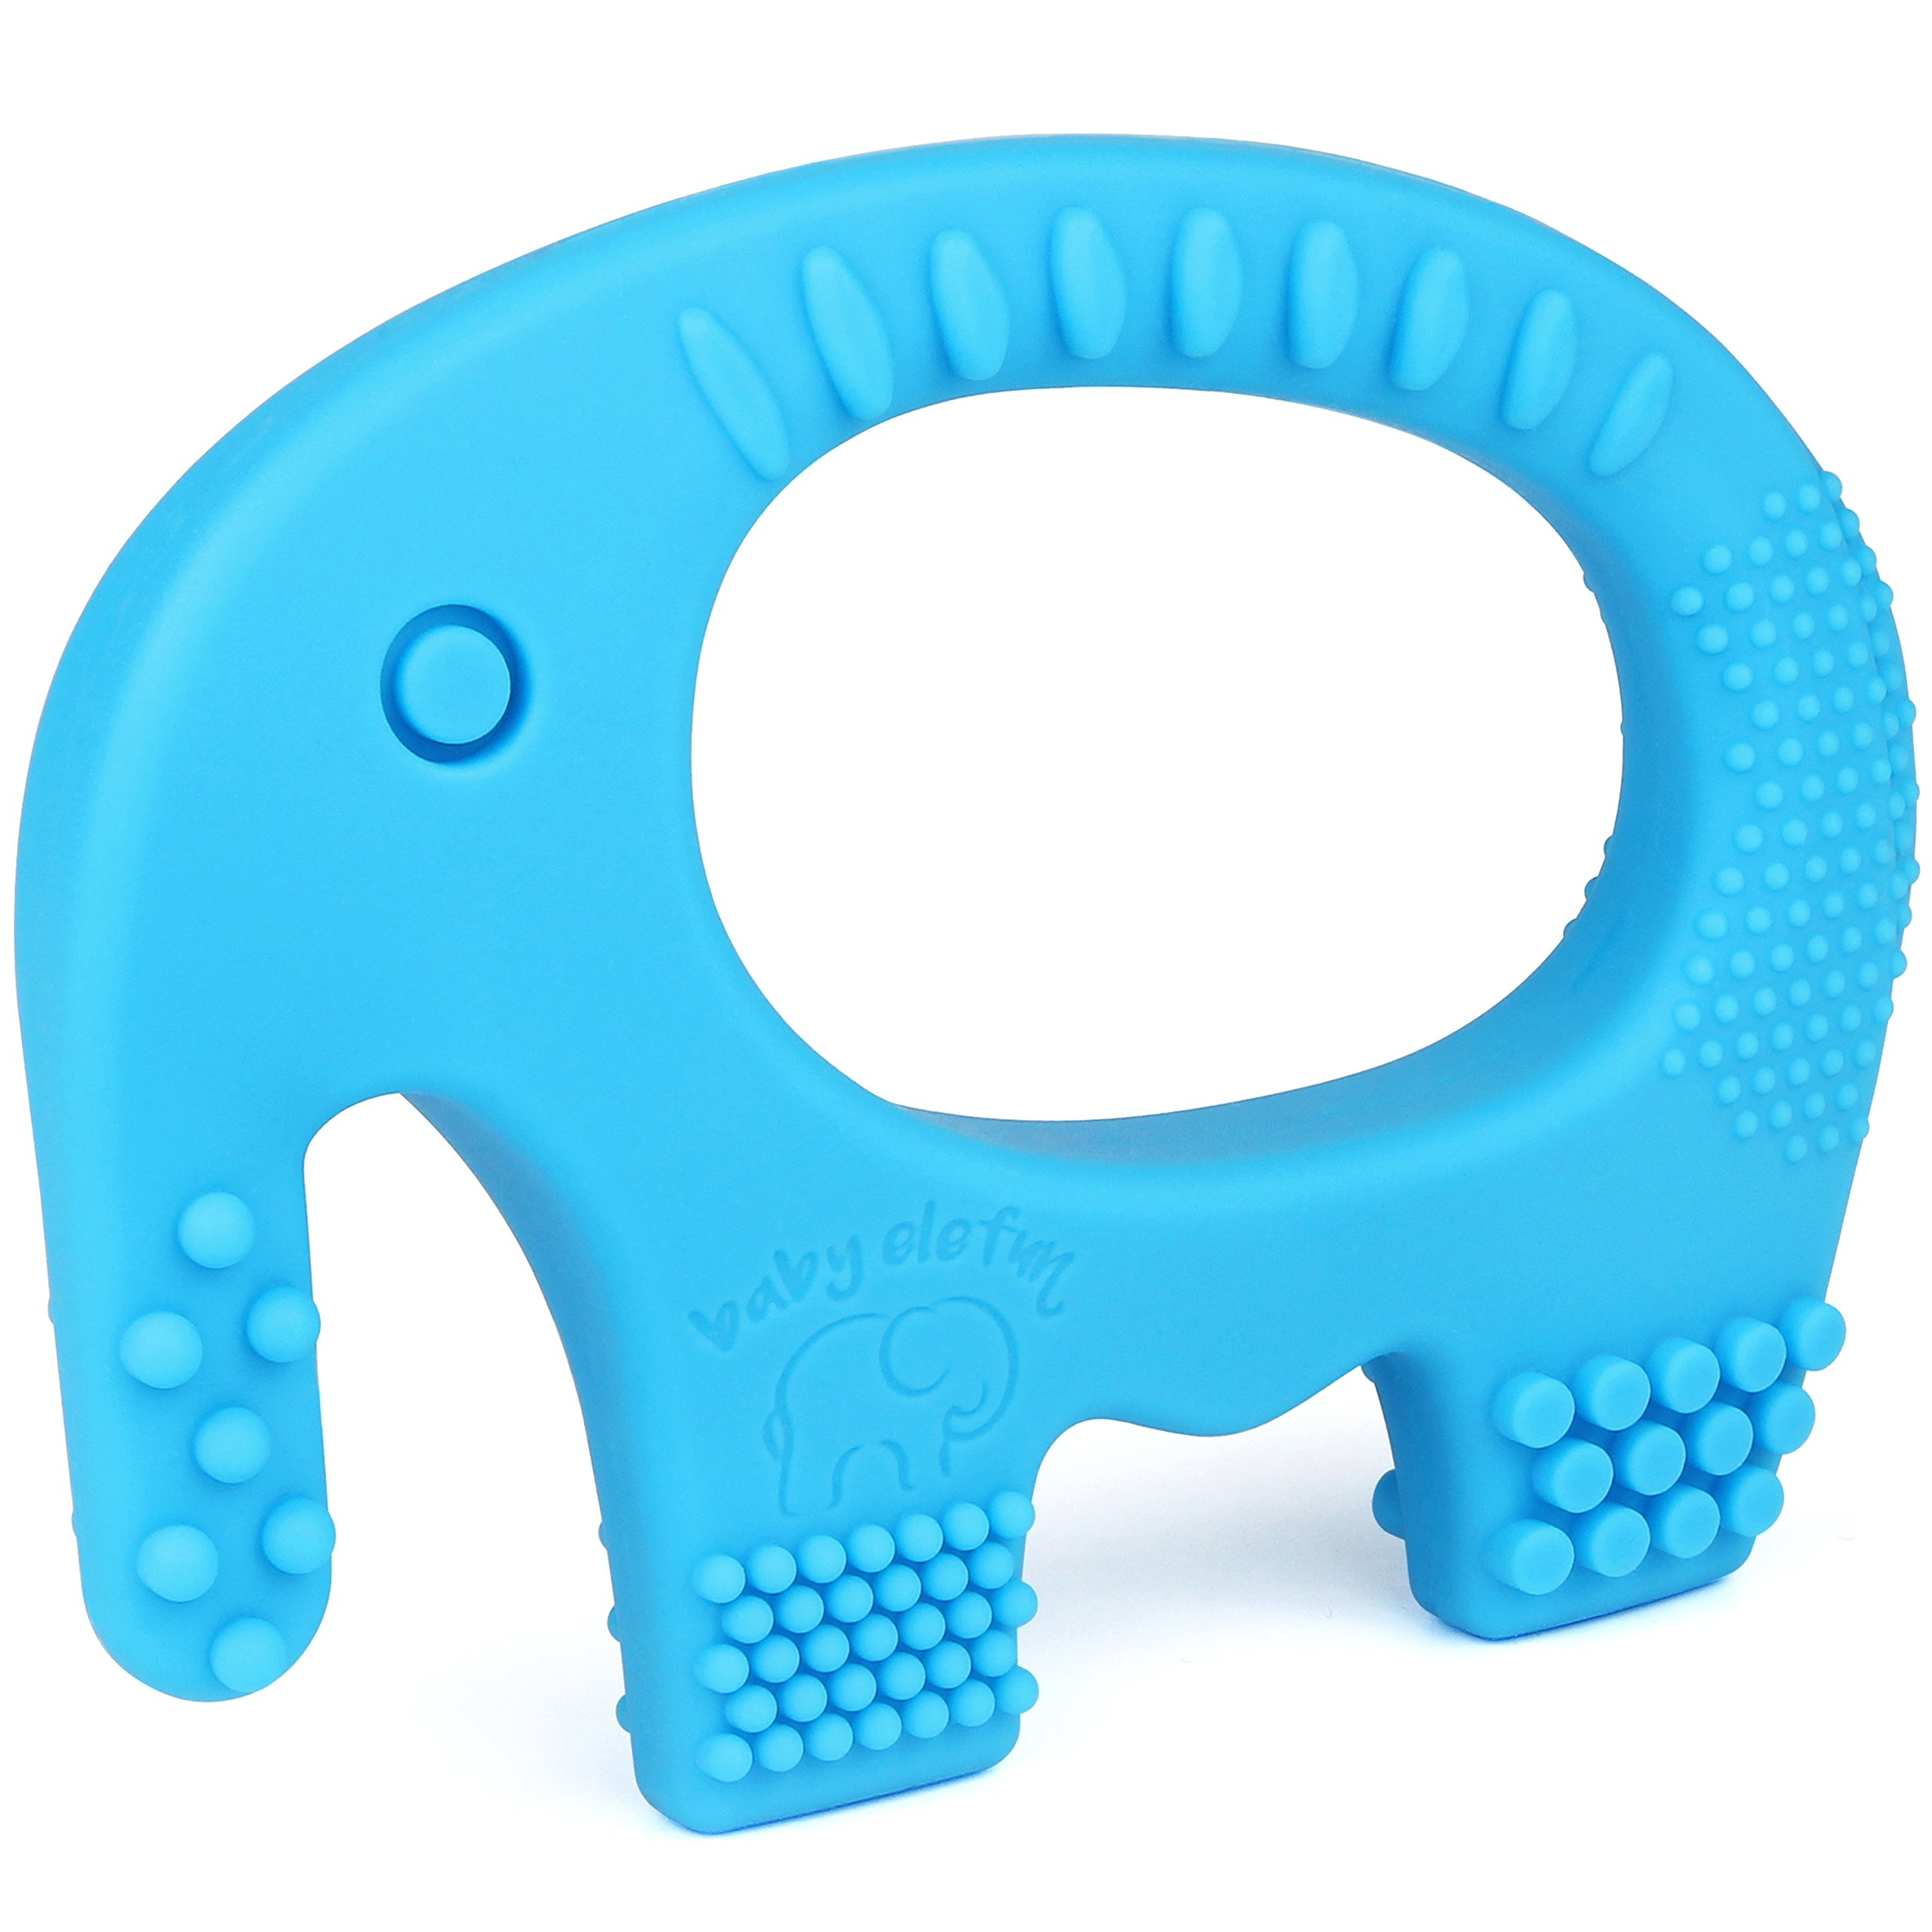 Amazon 6 month old baby toys adorable teething octopus baby teething toys adorable blue silicone elephant teether bpa free best for girl or negle Image collections